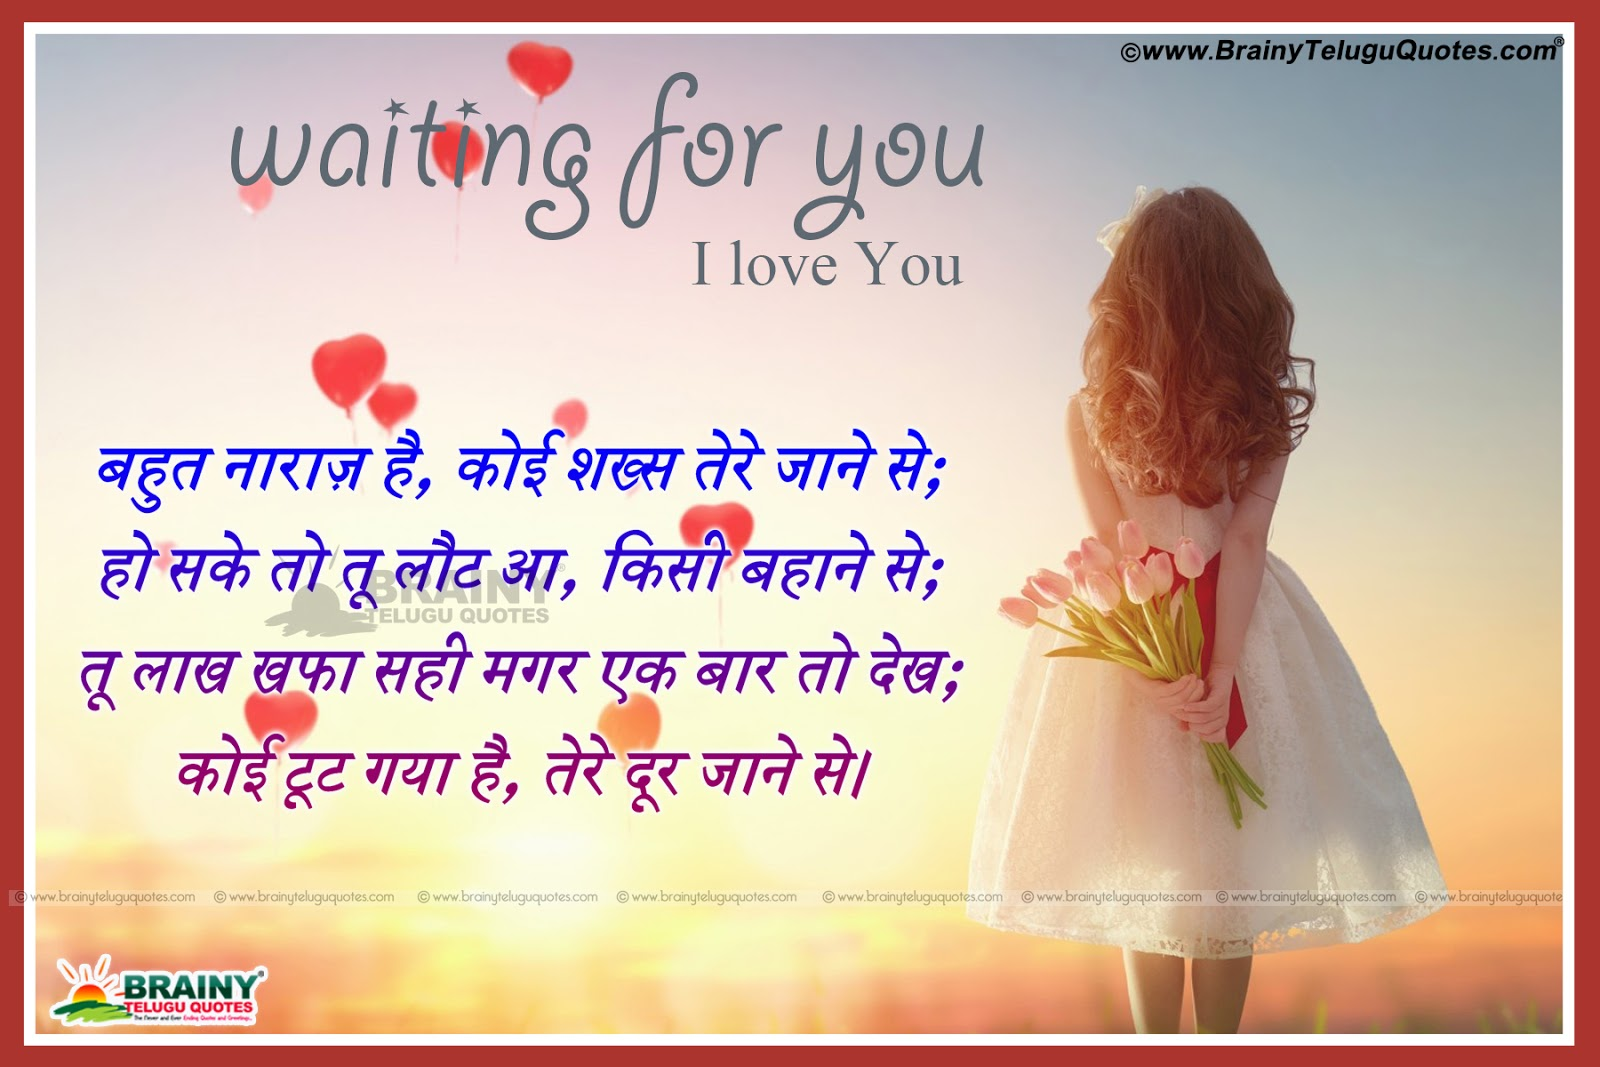 Best top love quotes in hindi images backgrounds hd alone - Love wallpaper thought in hindi ...